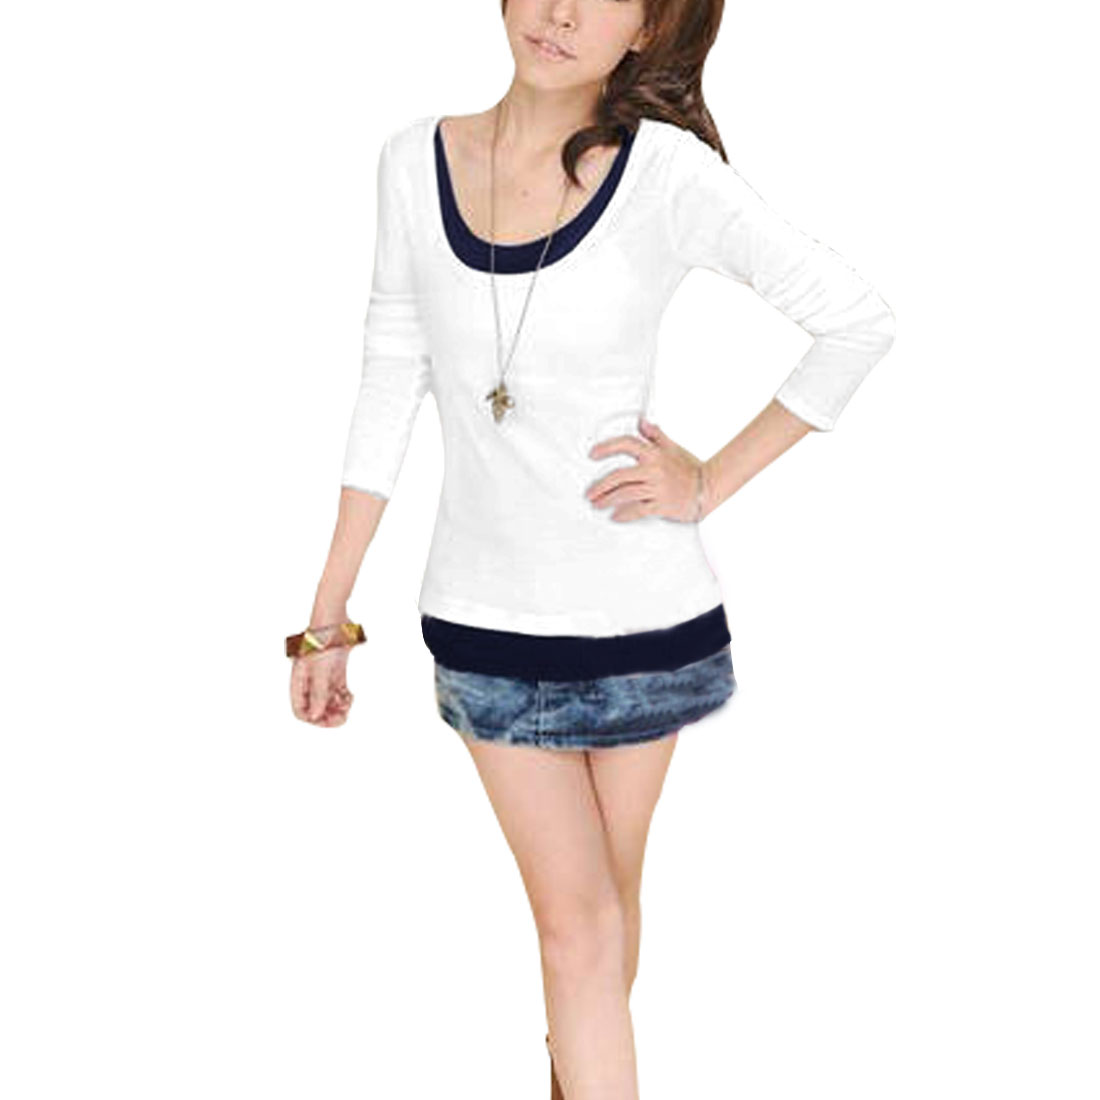 Ladies White Long Sleeves Pullover Stretchy Casual Tee Shirt XS